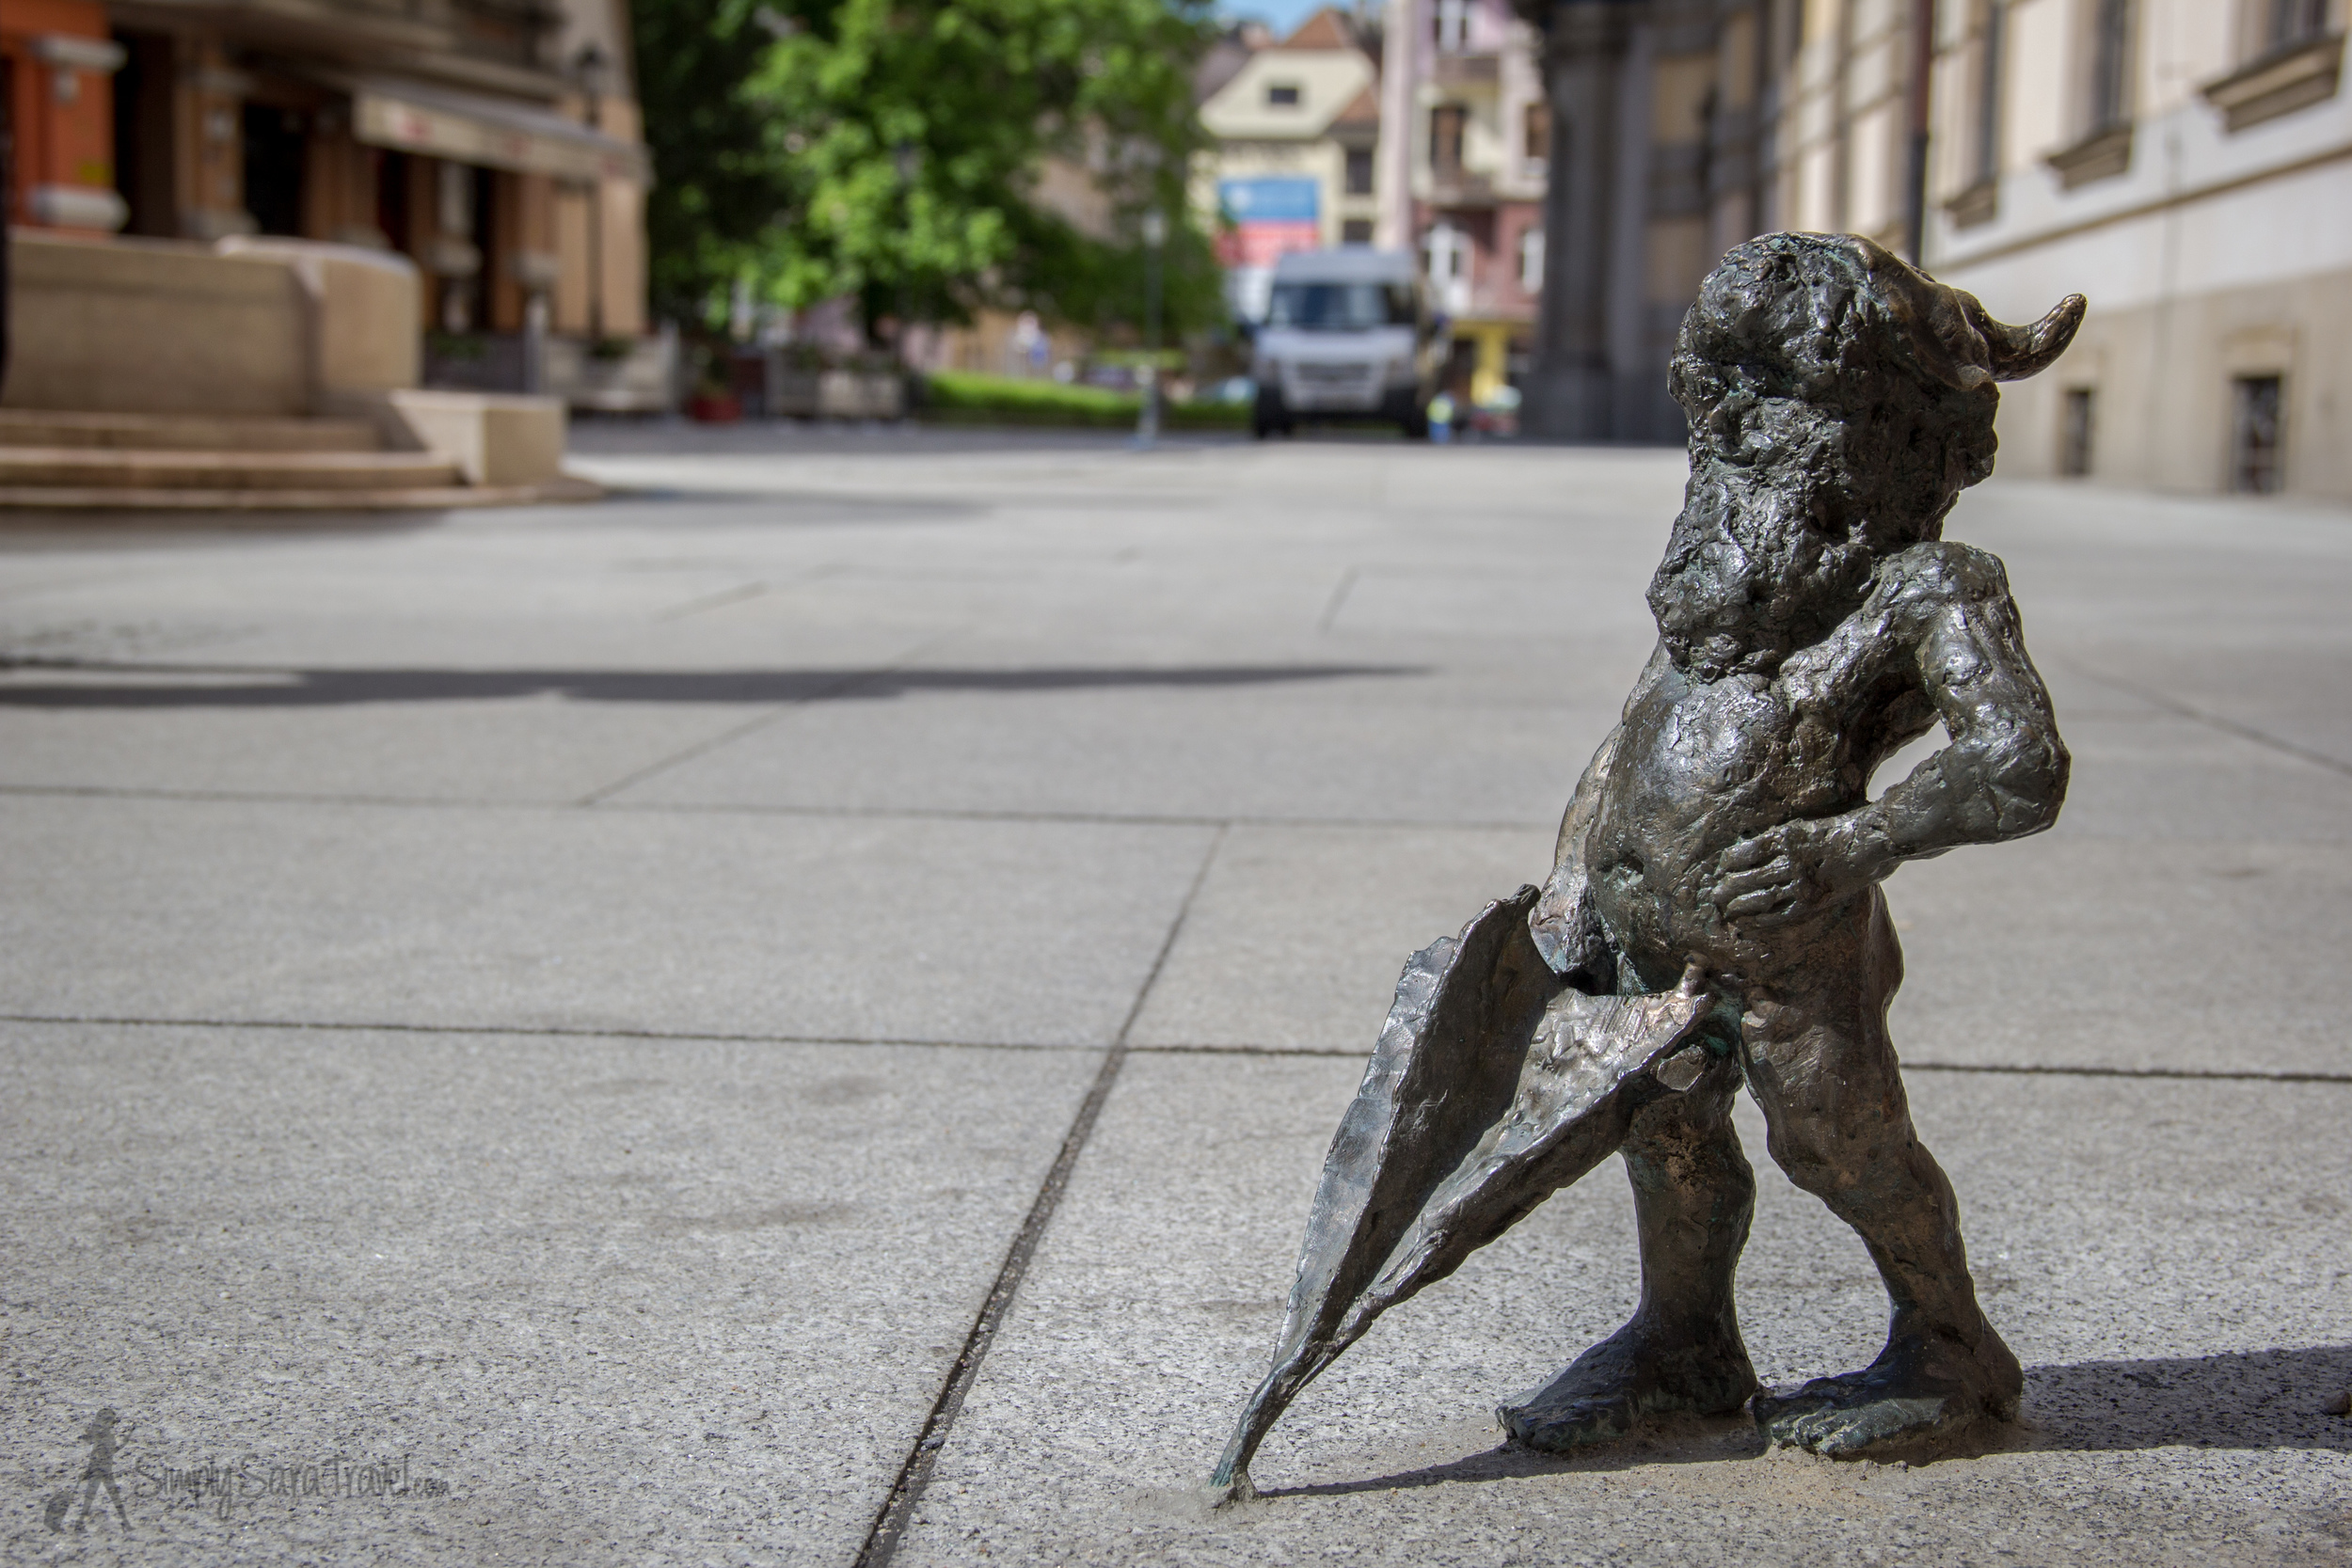 Gnome on street holding umbrella in Wroclaw, Poland